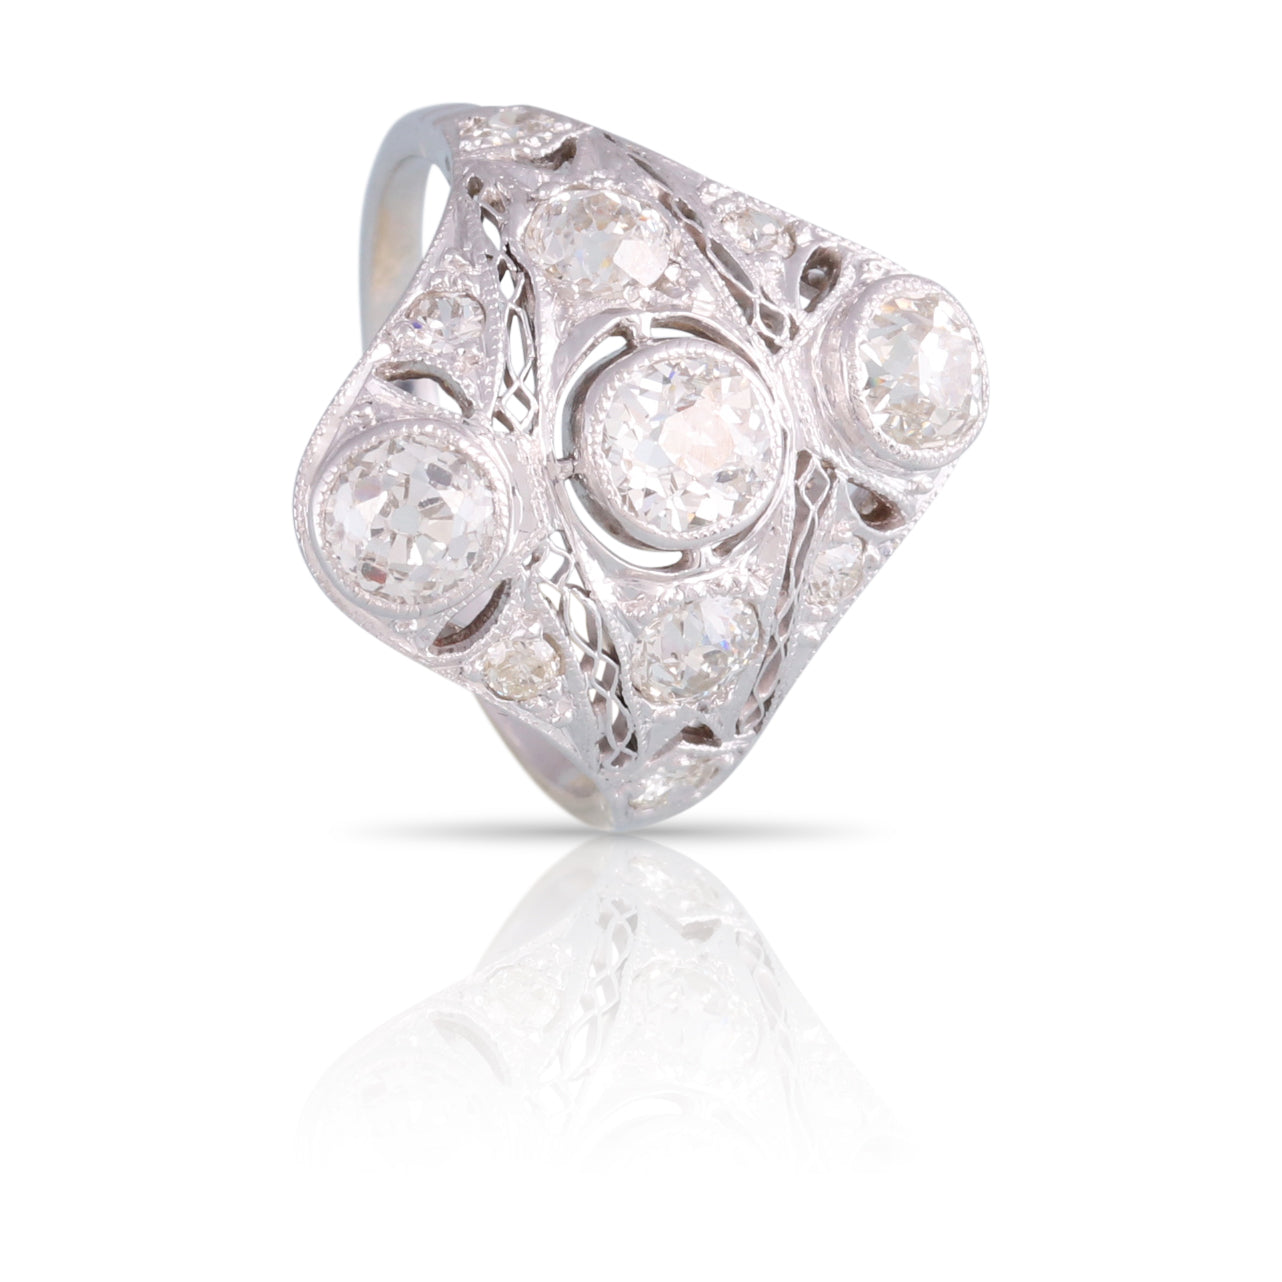 Art Deco Three Stone Diamond Filigree Ring | The Bridget